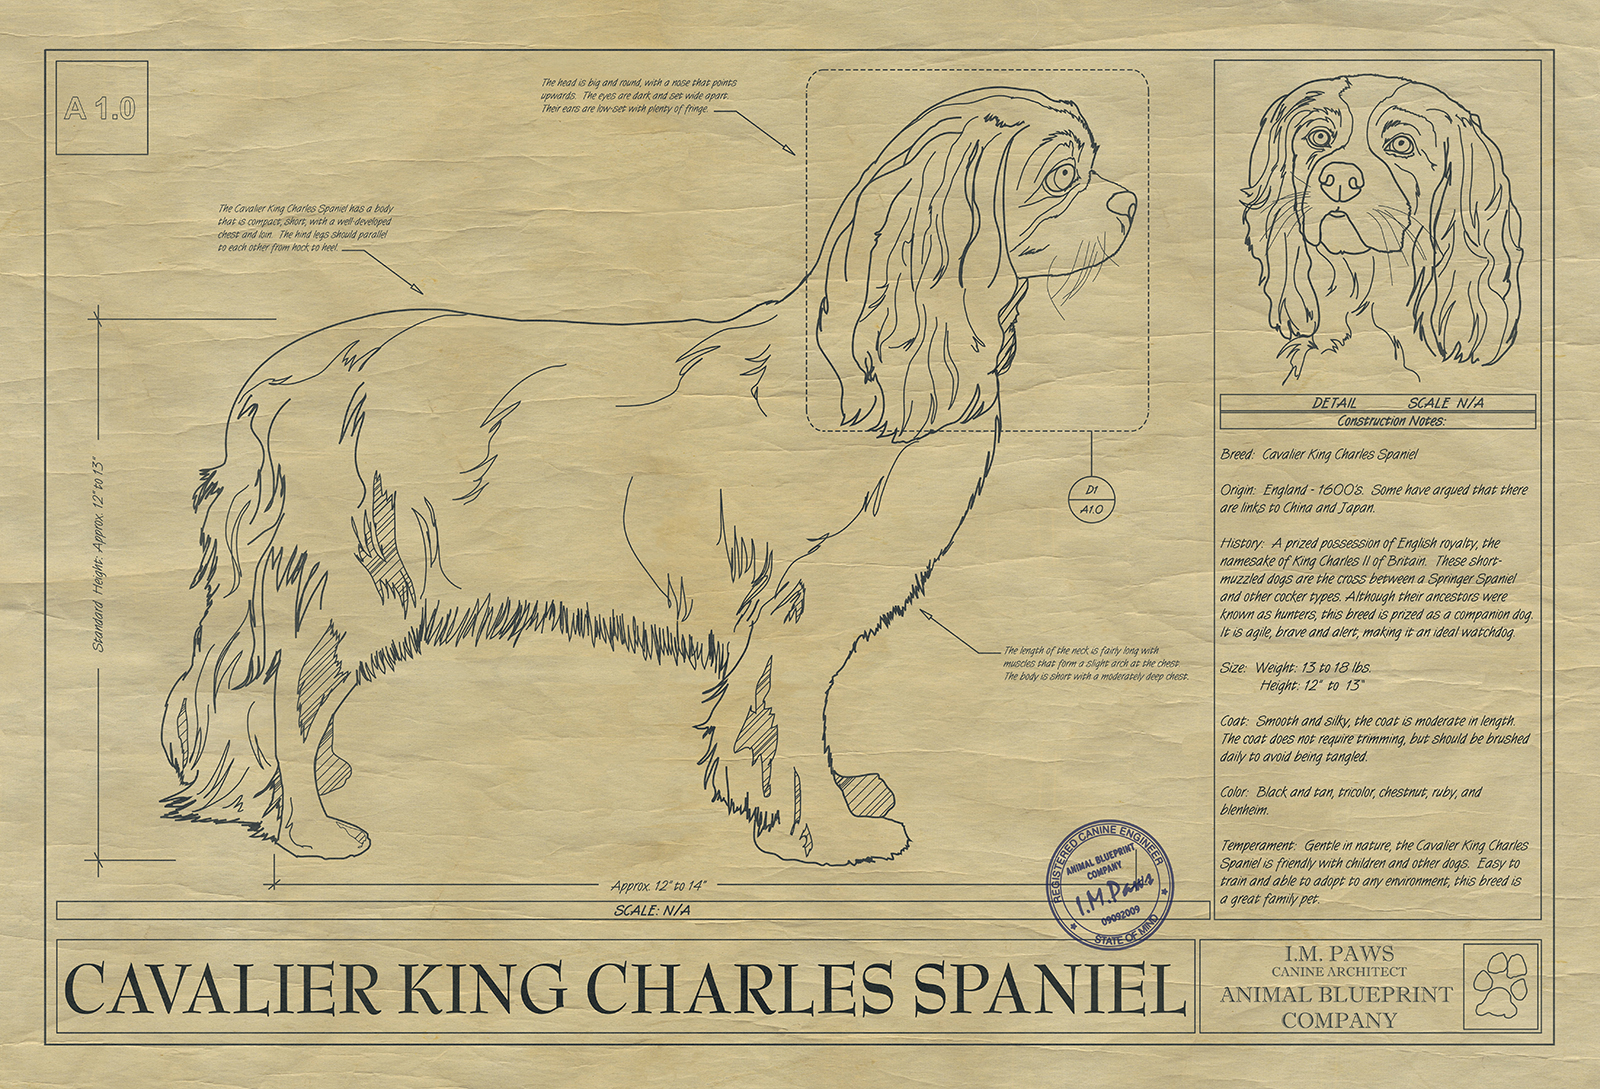 Cavalier king charles spaniel drawing animal blueprint company click image to enlarge malvernweather Gallery